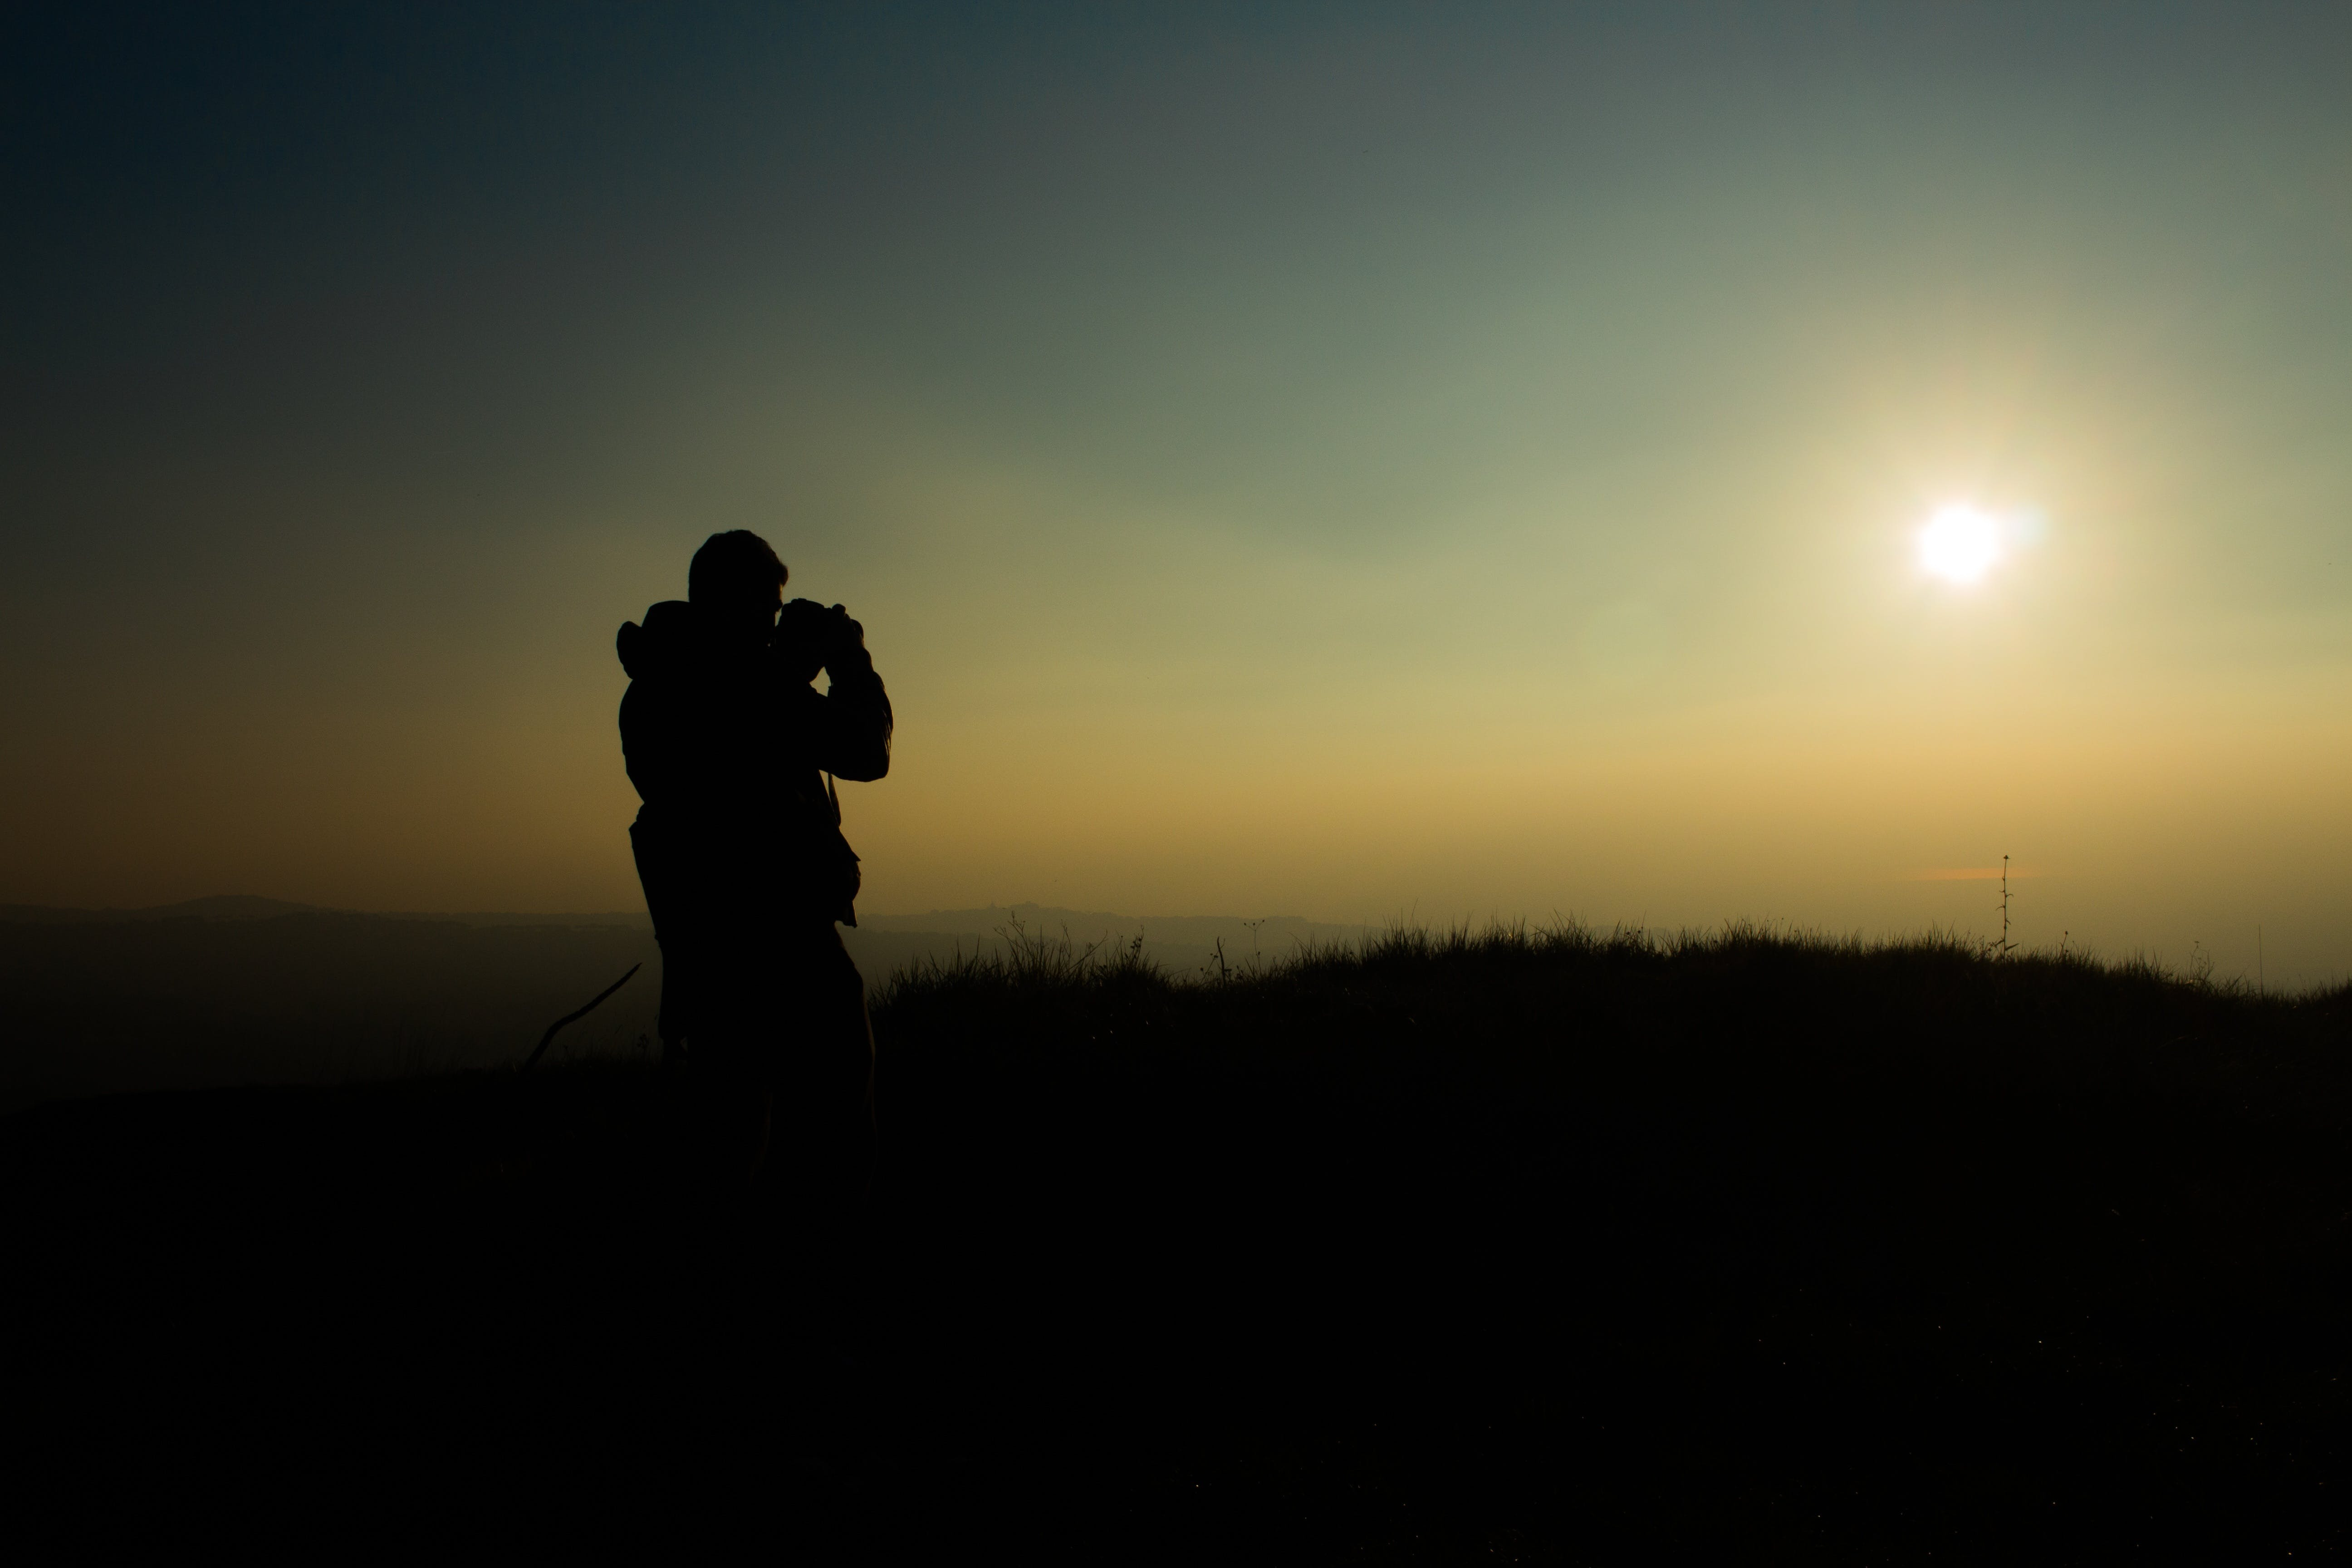 Silhouette of Man Holding Camera in Sunset